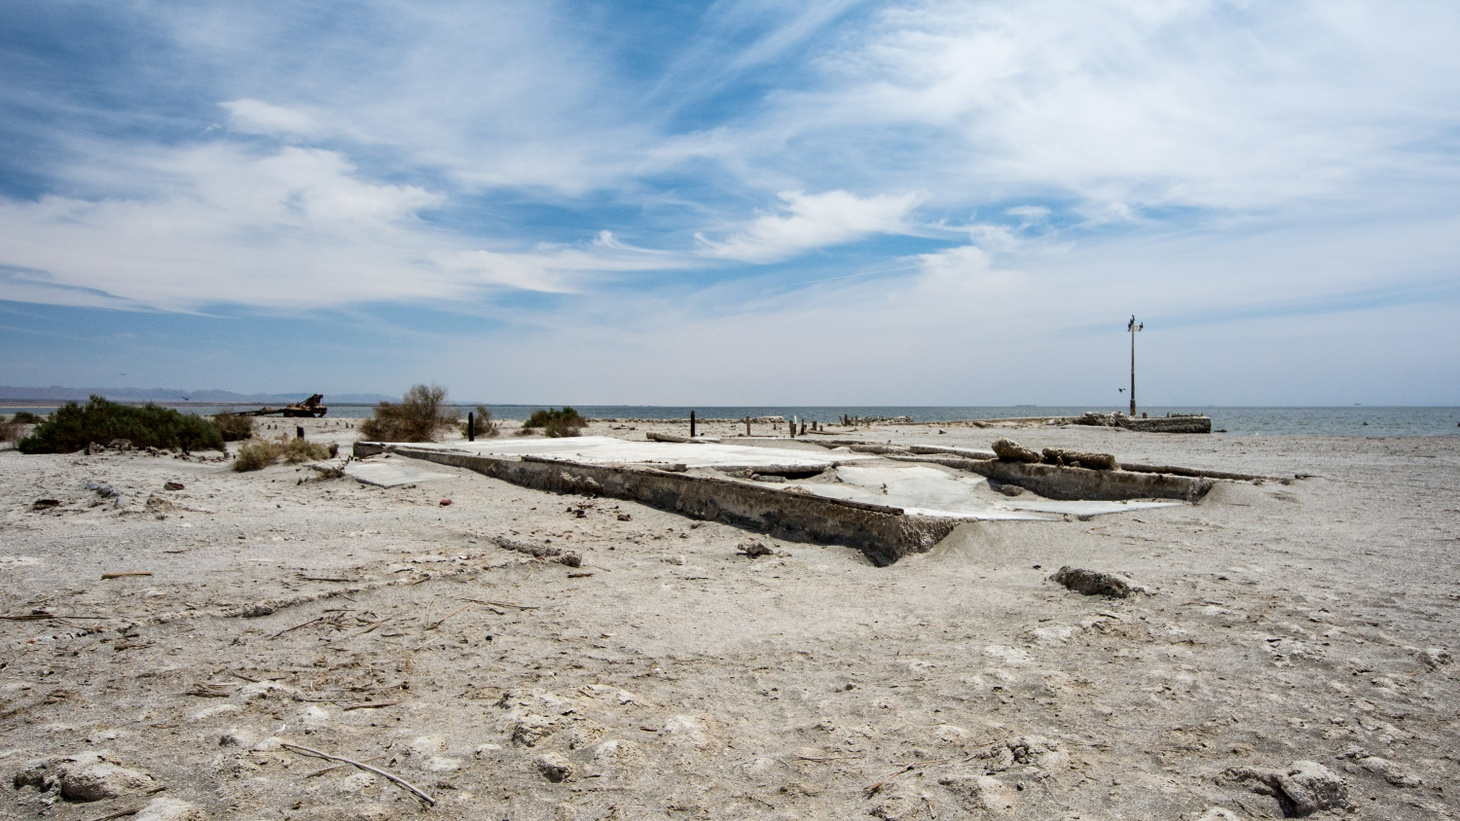 The Salton Sea in Imperial County is bigger than Lake Tahoe. Created by accident 110 years ago, it became a habitat for fish, migratory birds—and Hollywood celebrities. But now it's become a dustbowl of toxic chemicals. Will the State make good on a promise to save it?